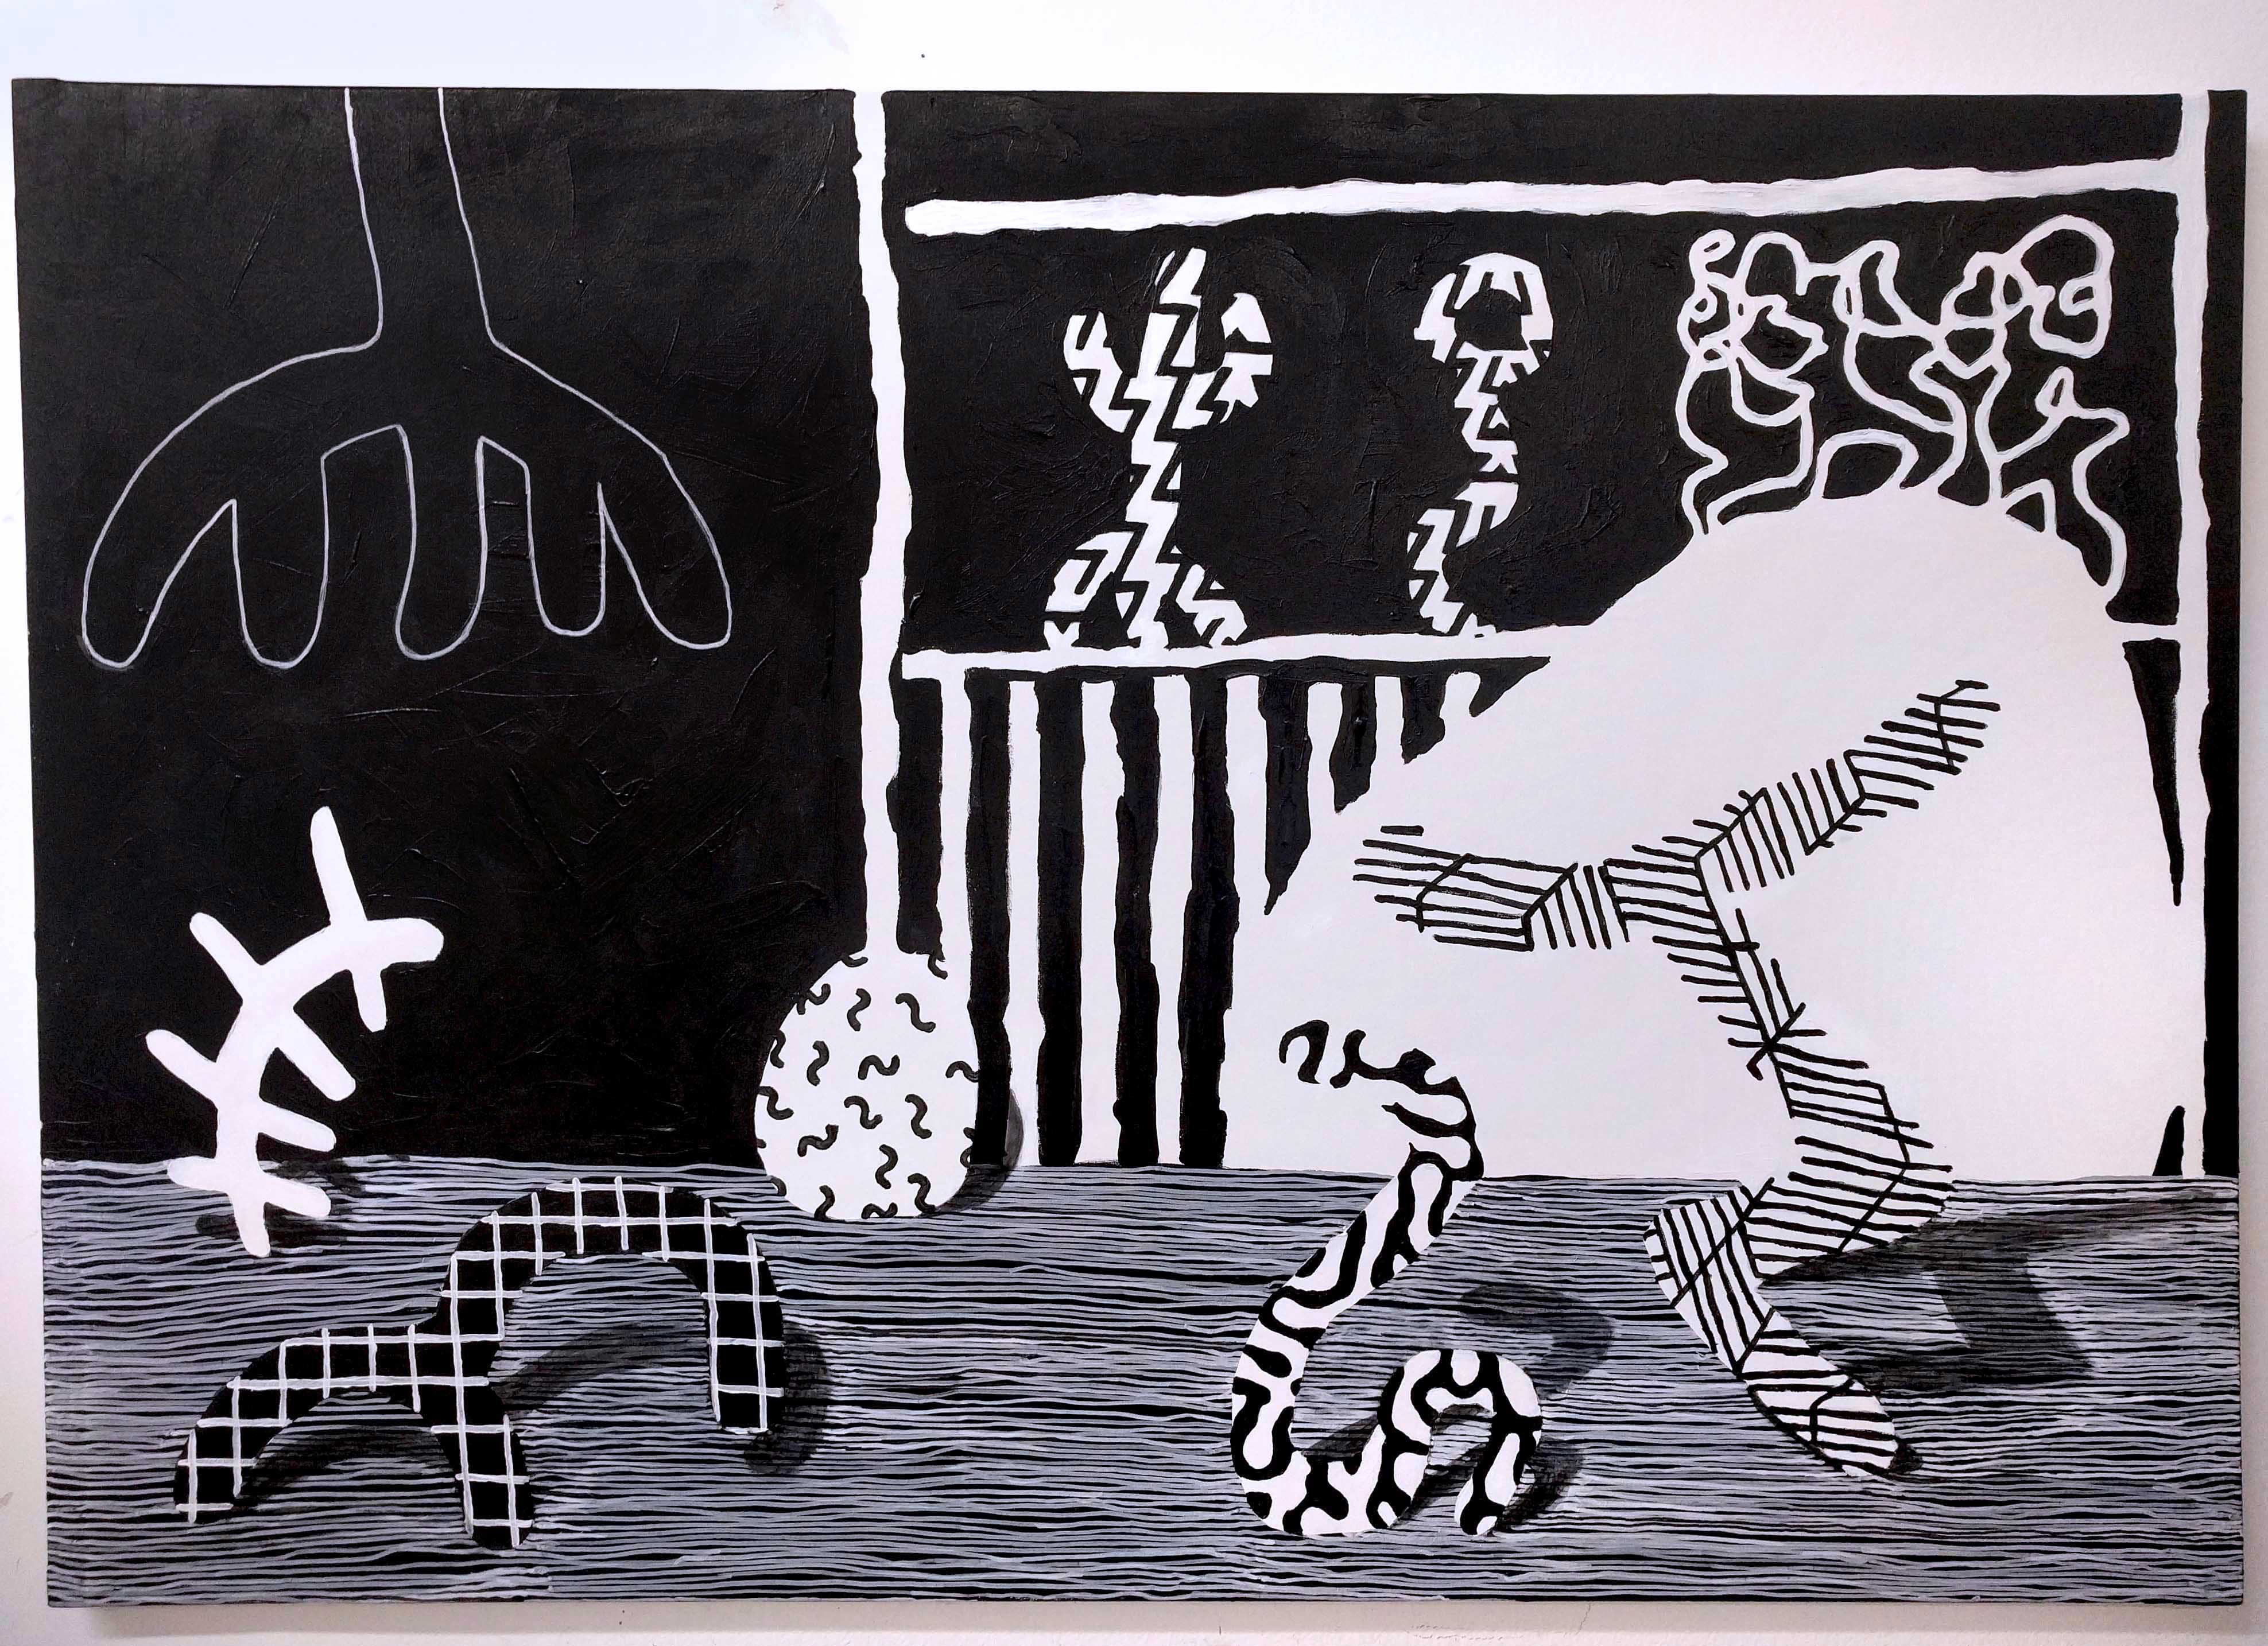 black and white forms with different patterns dancing in a painting